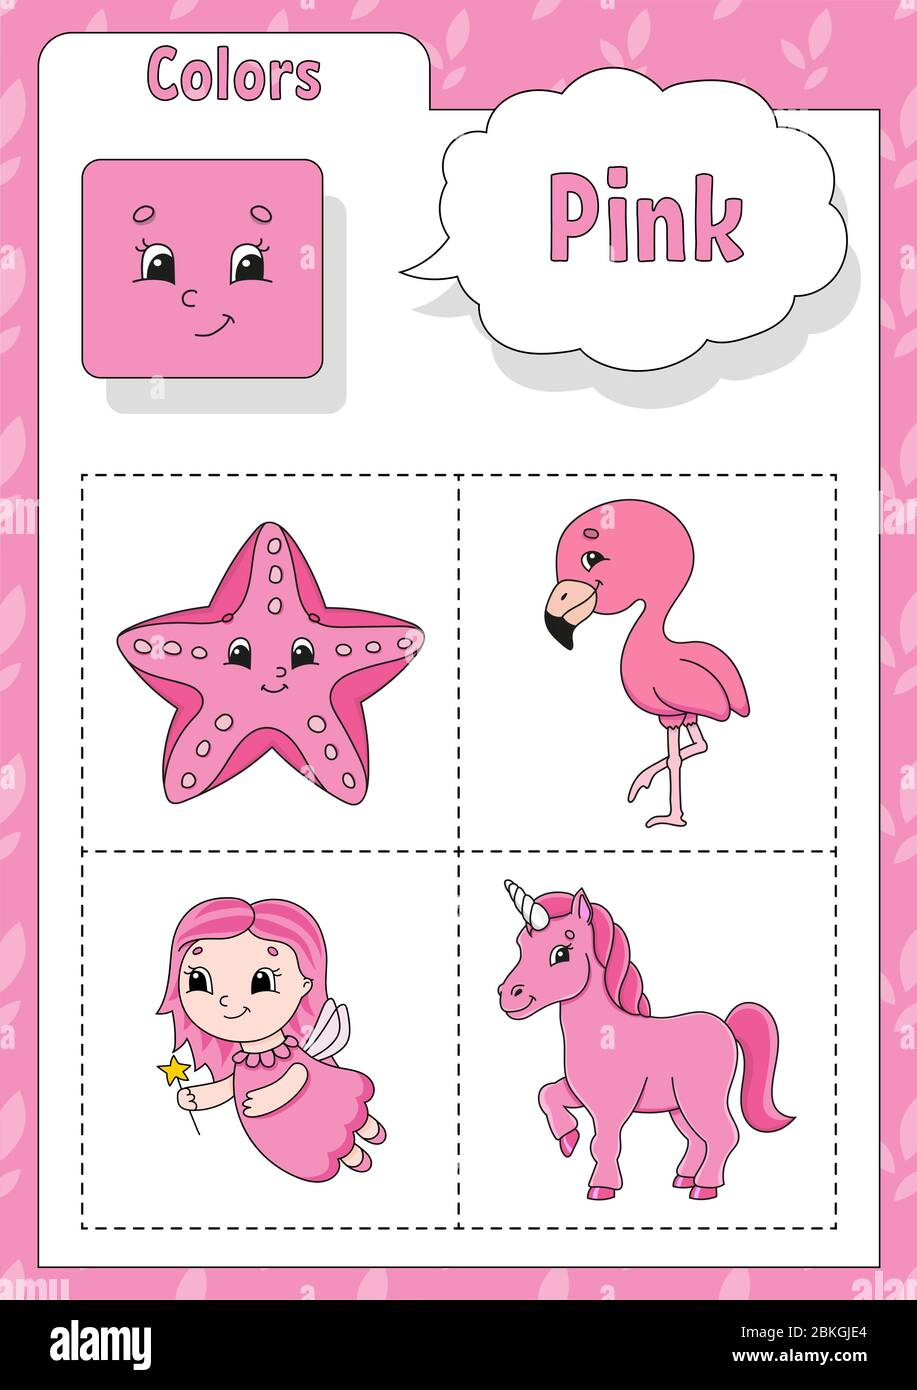 Learning Colors Pink Color Flashcard For Kids Cute Cartoon Characters Picture Set For Preschoolers Education Worksheet Vector Illustration Stock Vector Image Art Alamy